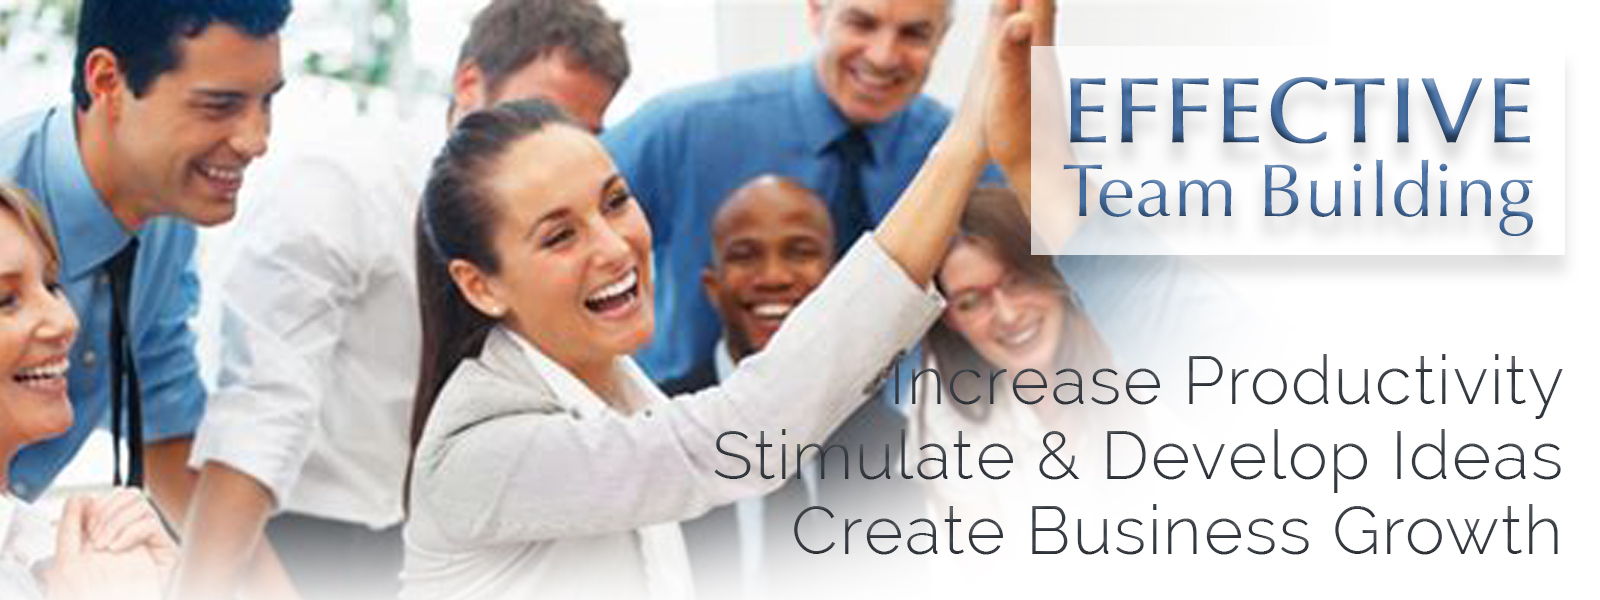 Camelot Enterprises, LLC - est. 1994 | Effective Team Building Training and Consultations